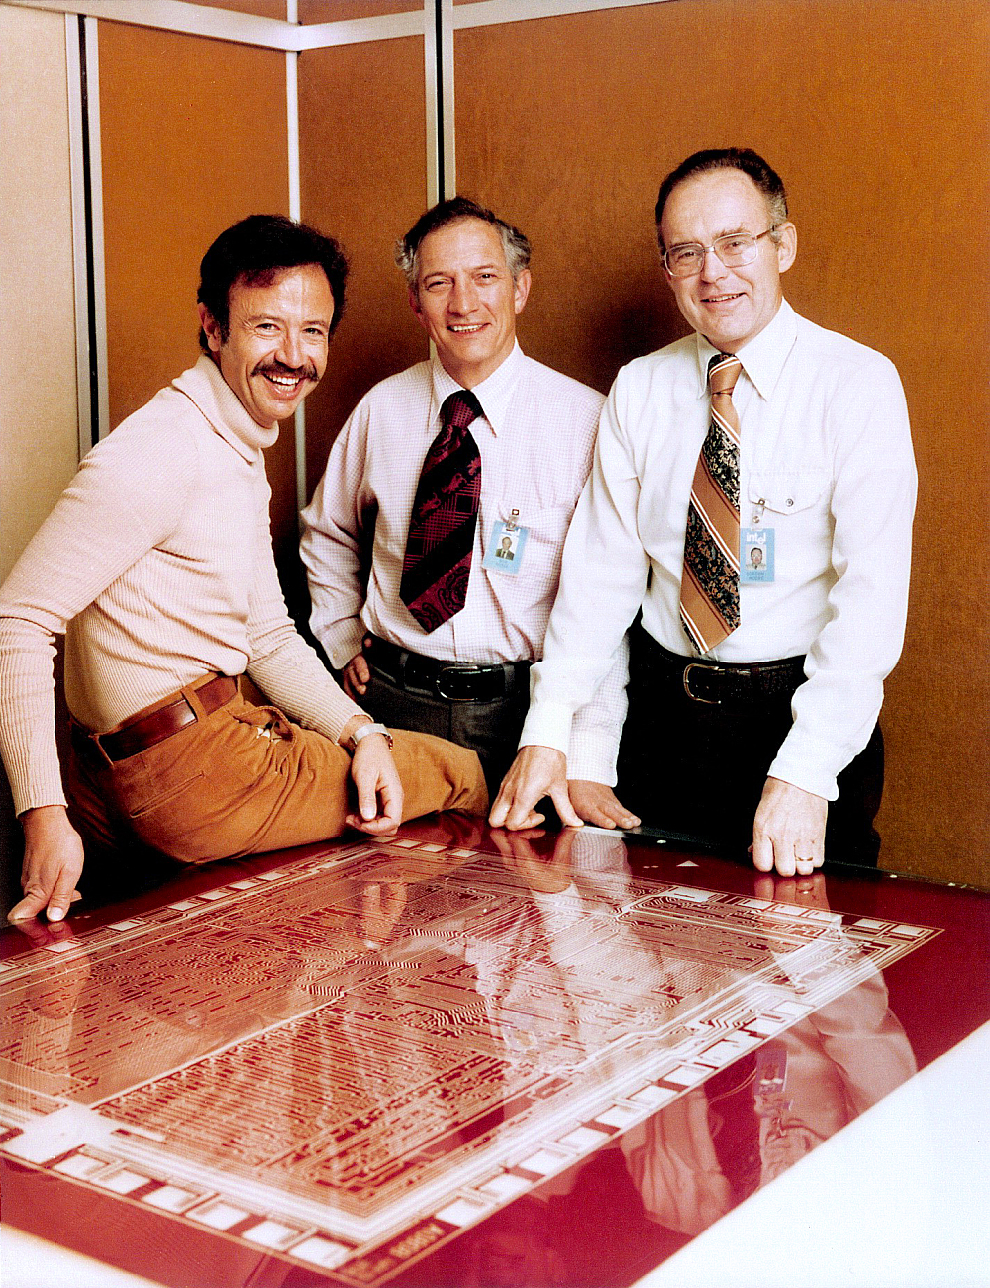 andy_grove_robert_noyce_gordon_moore_1978_edit